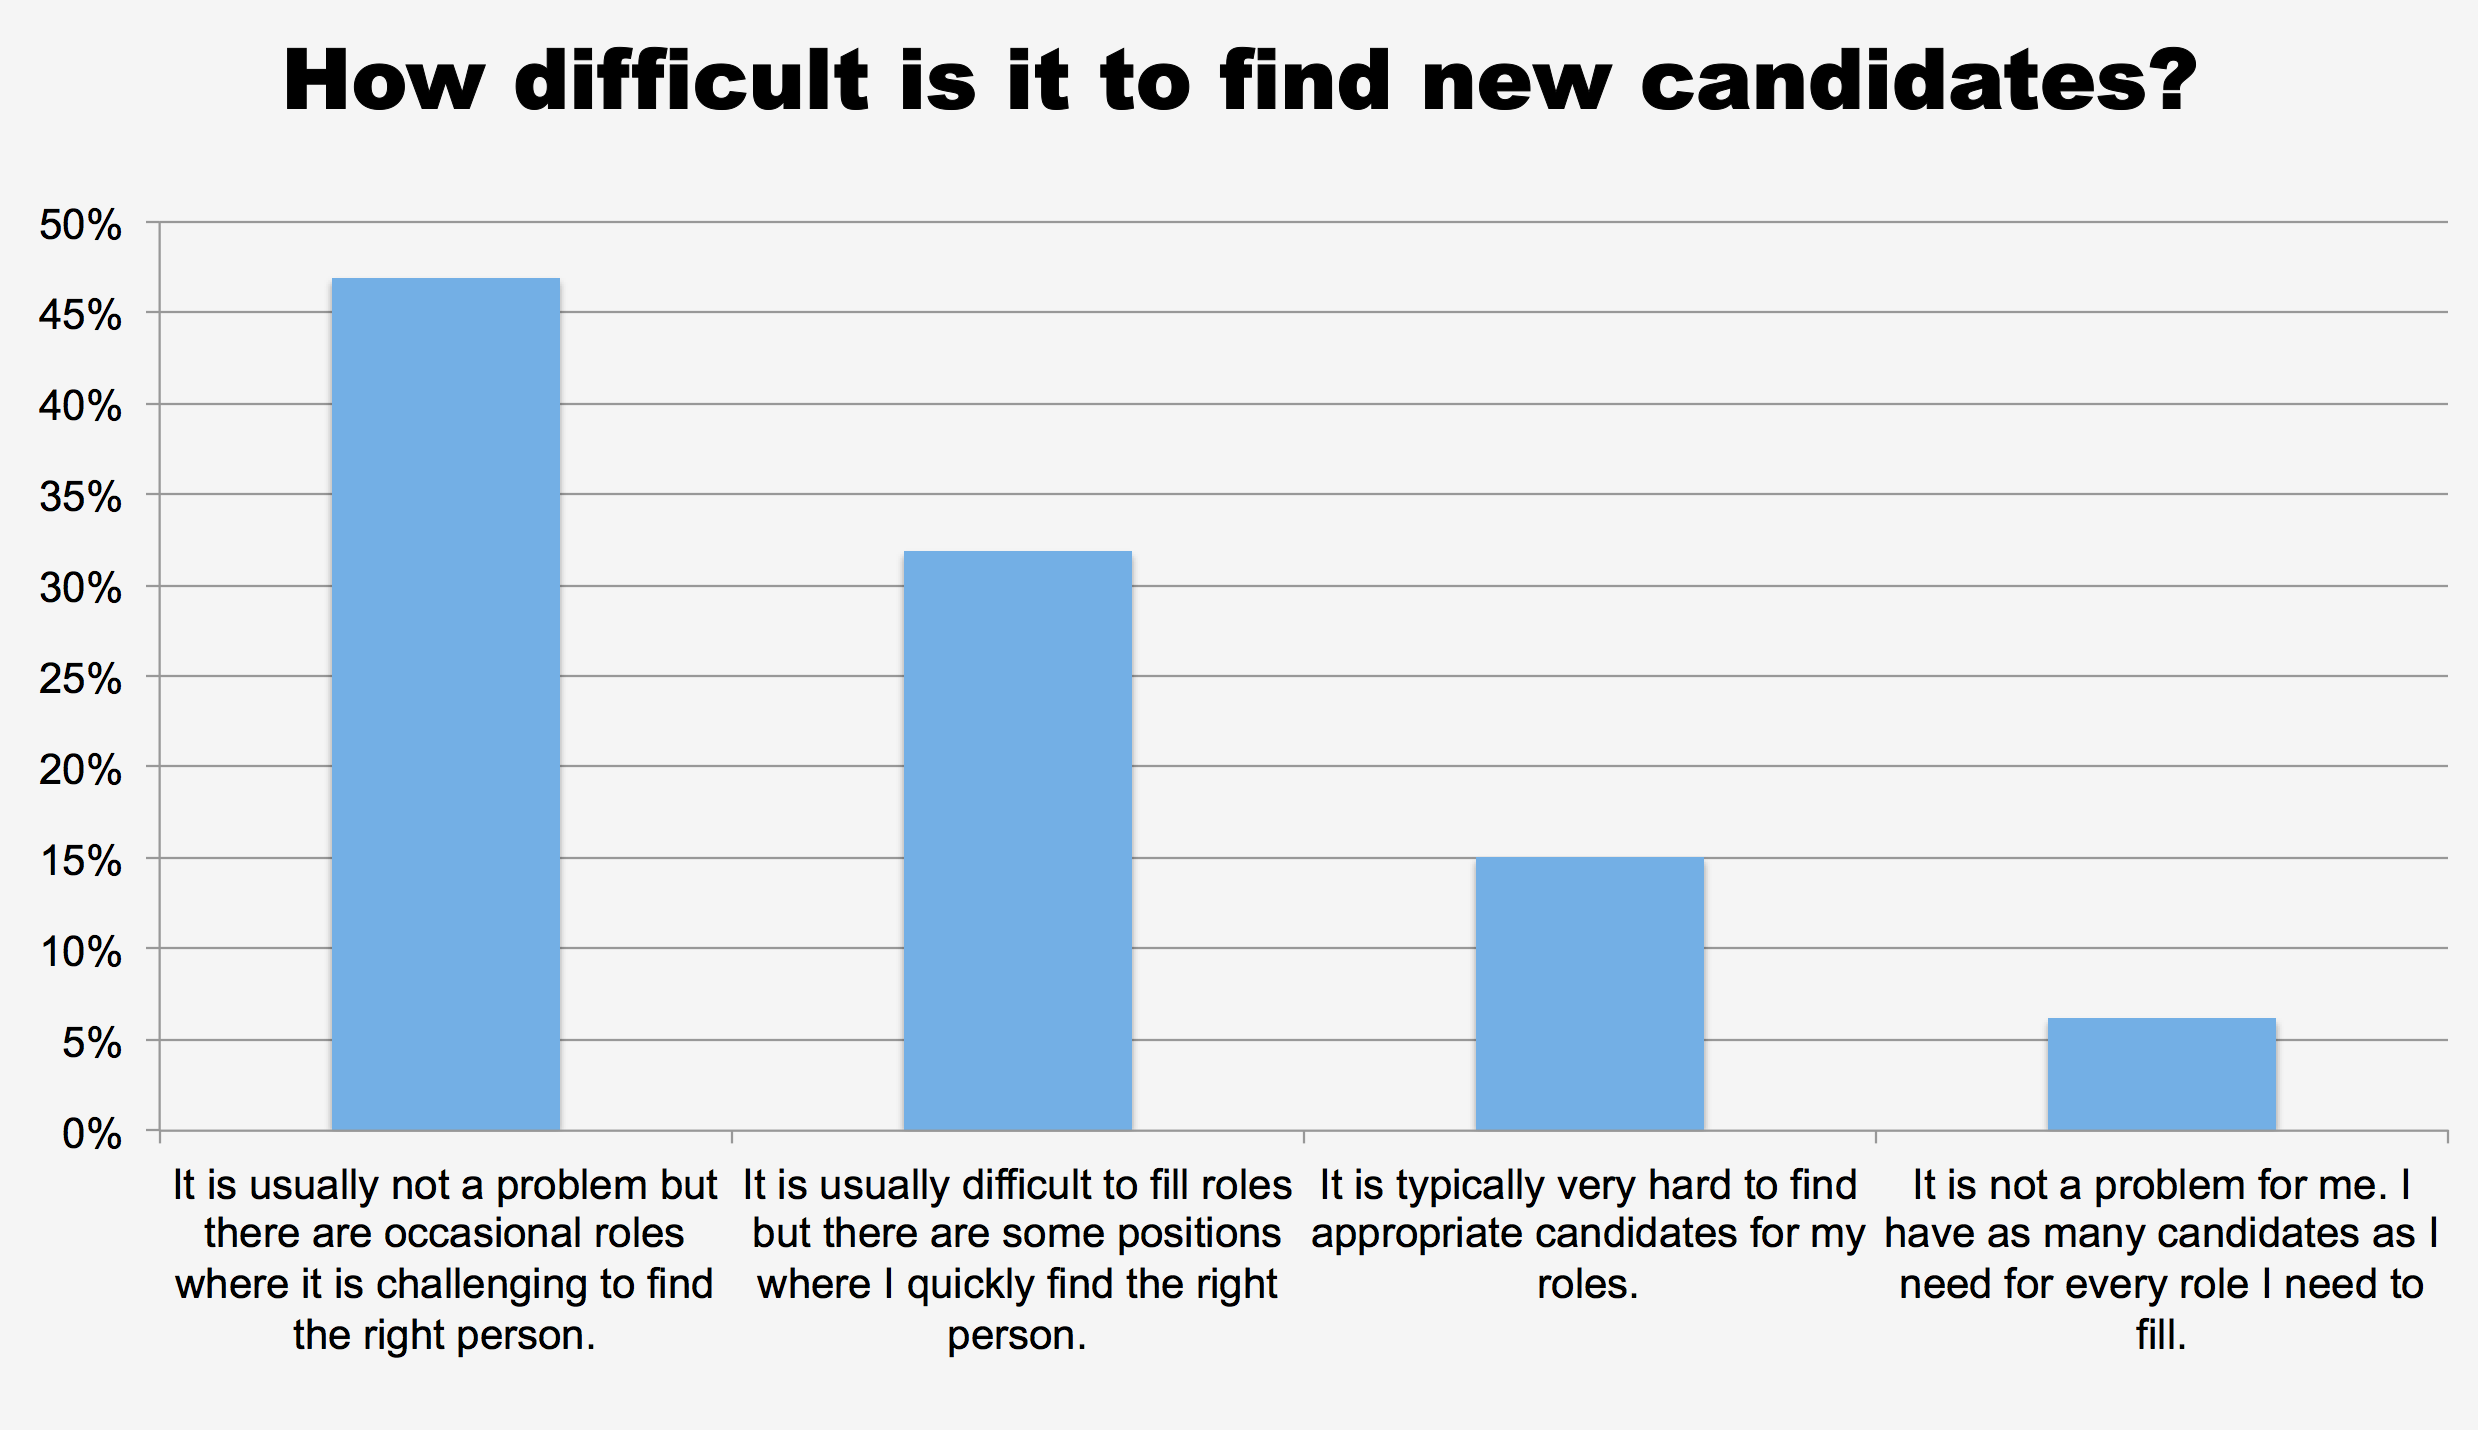 How difficult is it to find new candidates?